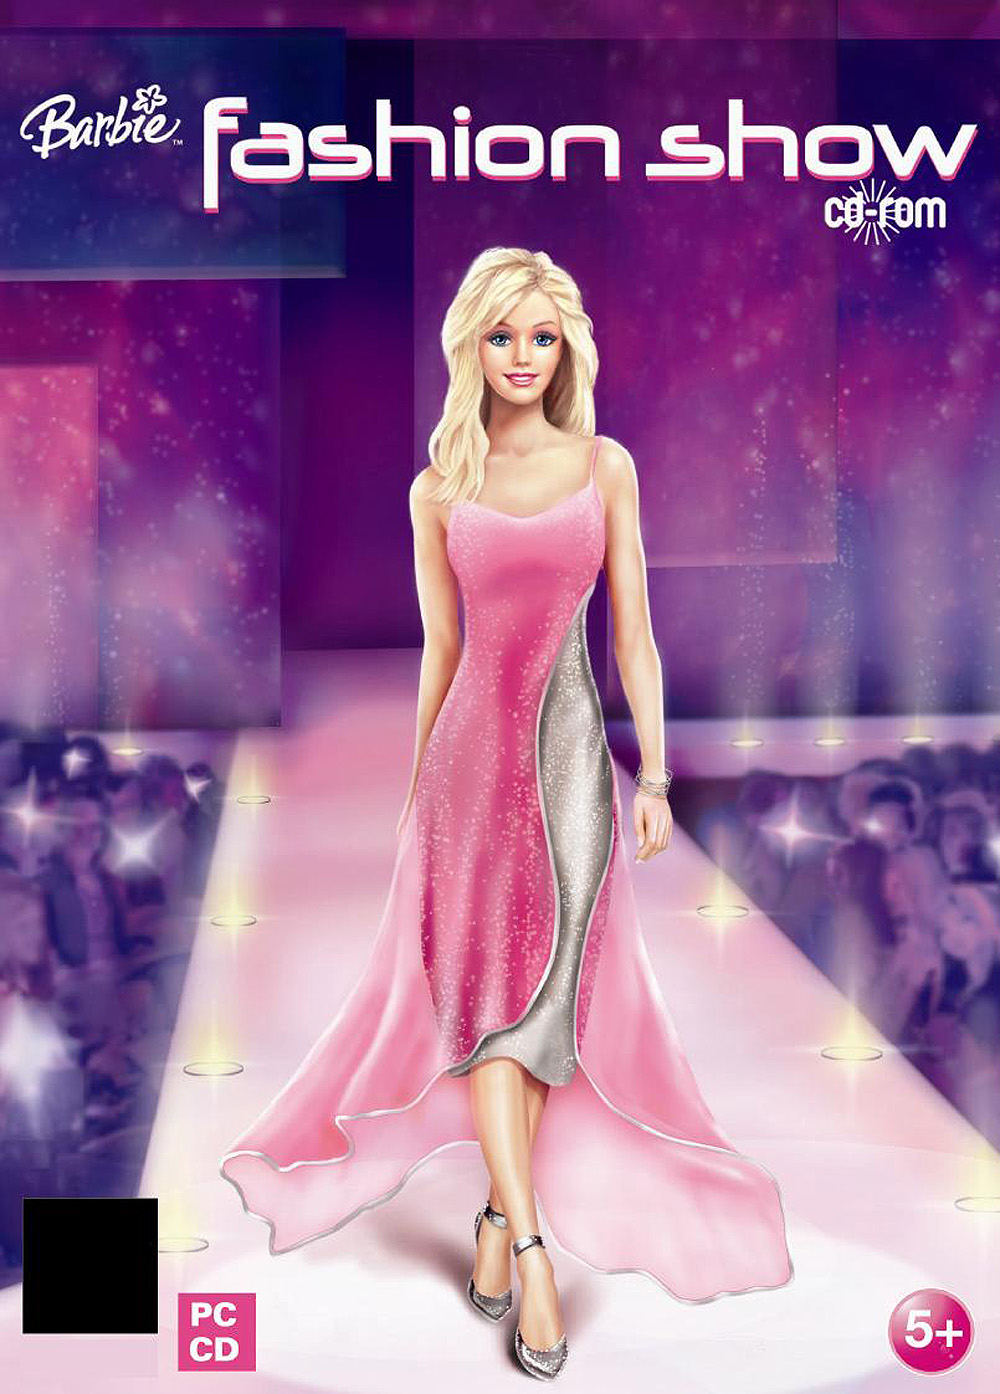 Barbie fashion pc games 39